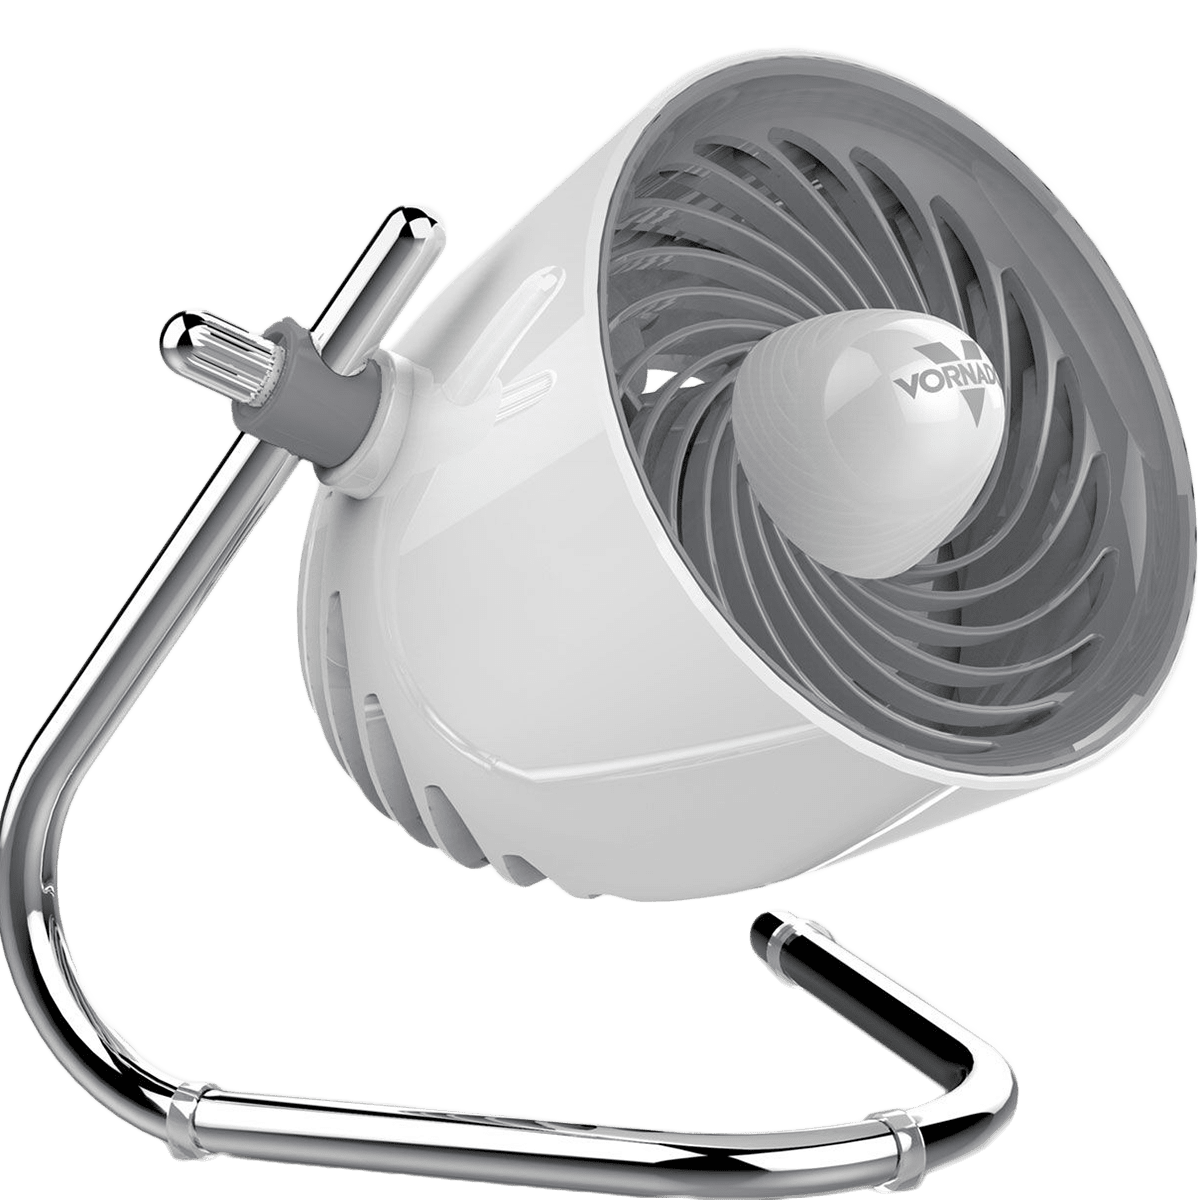 Vornado Pivot Personal Air Circulator Ice Gray